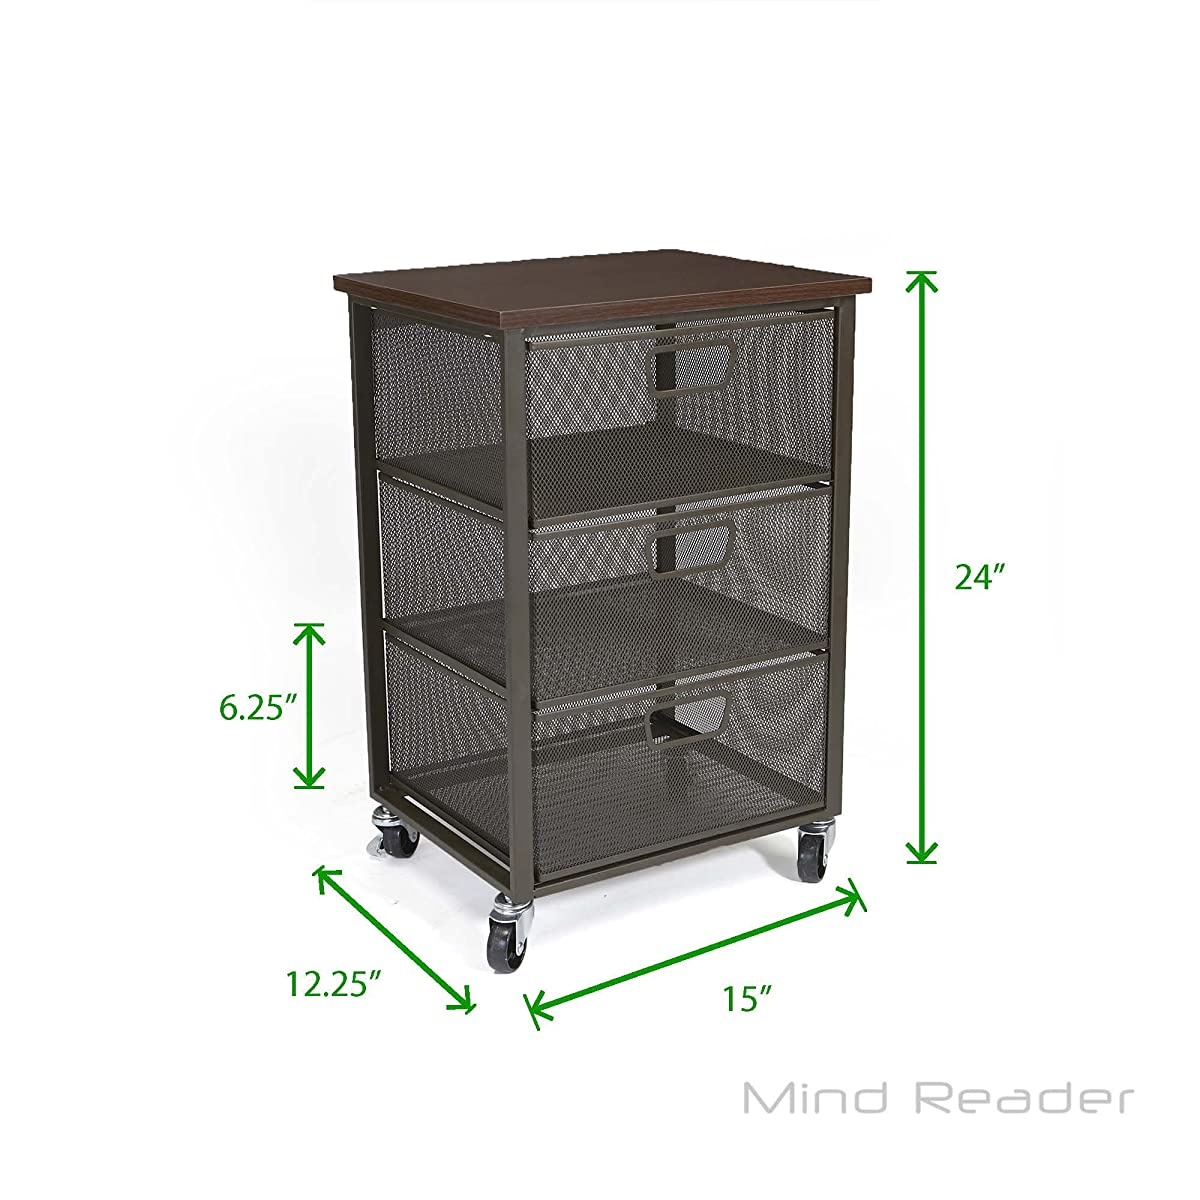 Mind Reader Rolling Storage Cart with 3 Drawers, File Storage Cart, Utility Cart, Office Cart Drawer Storage, Bathroom Storage